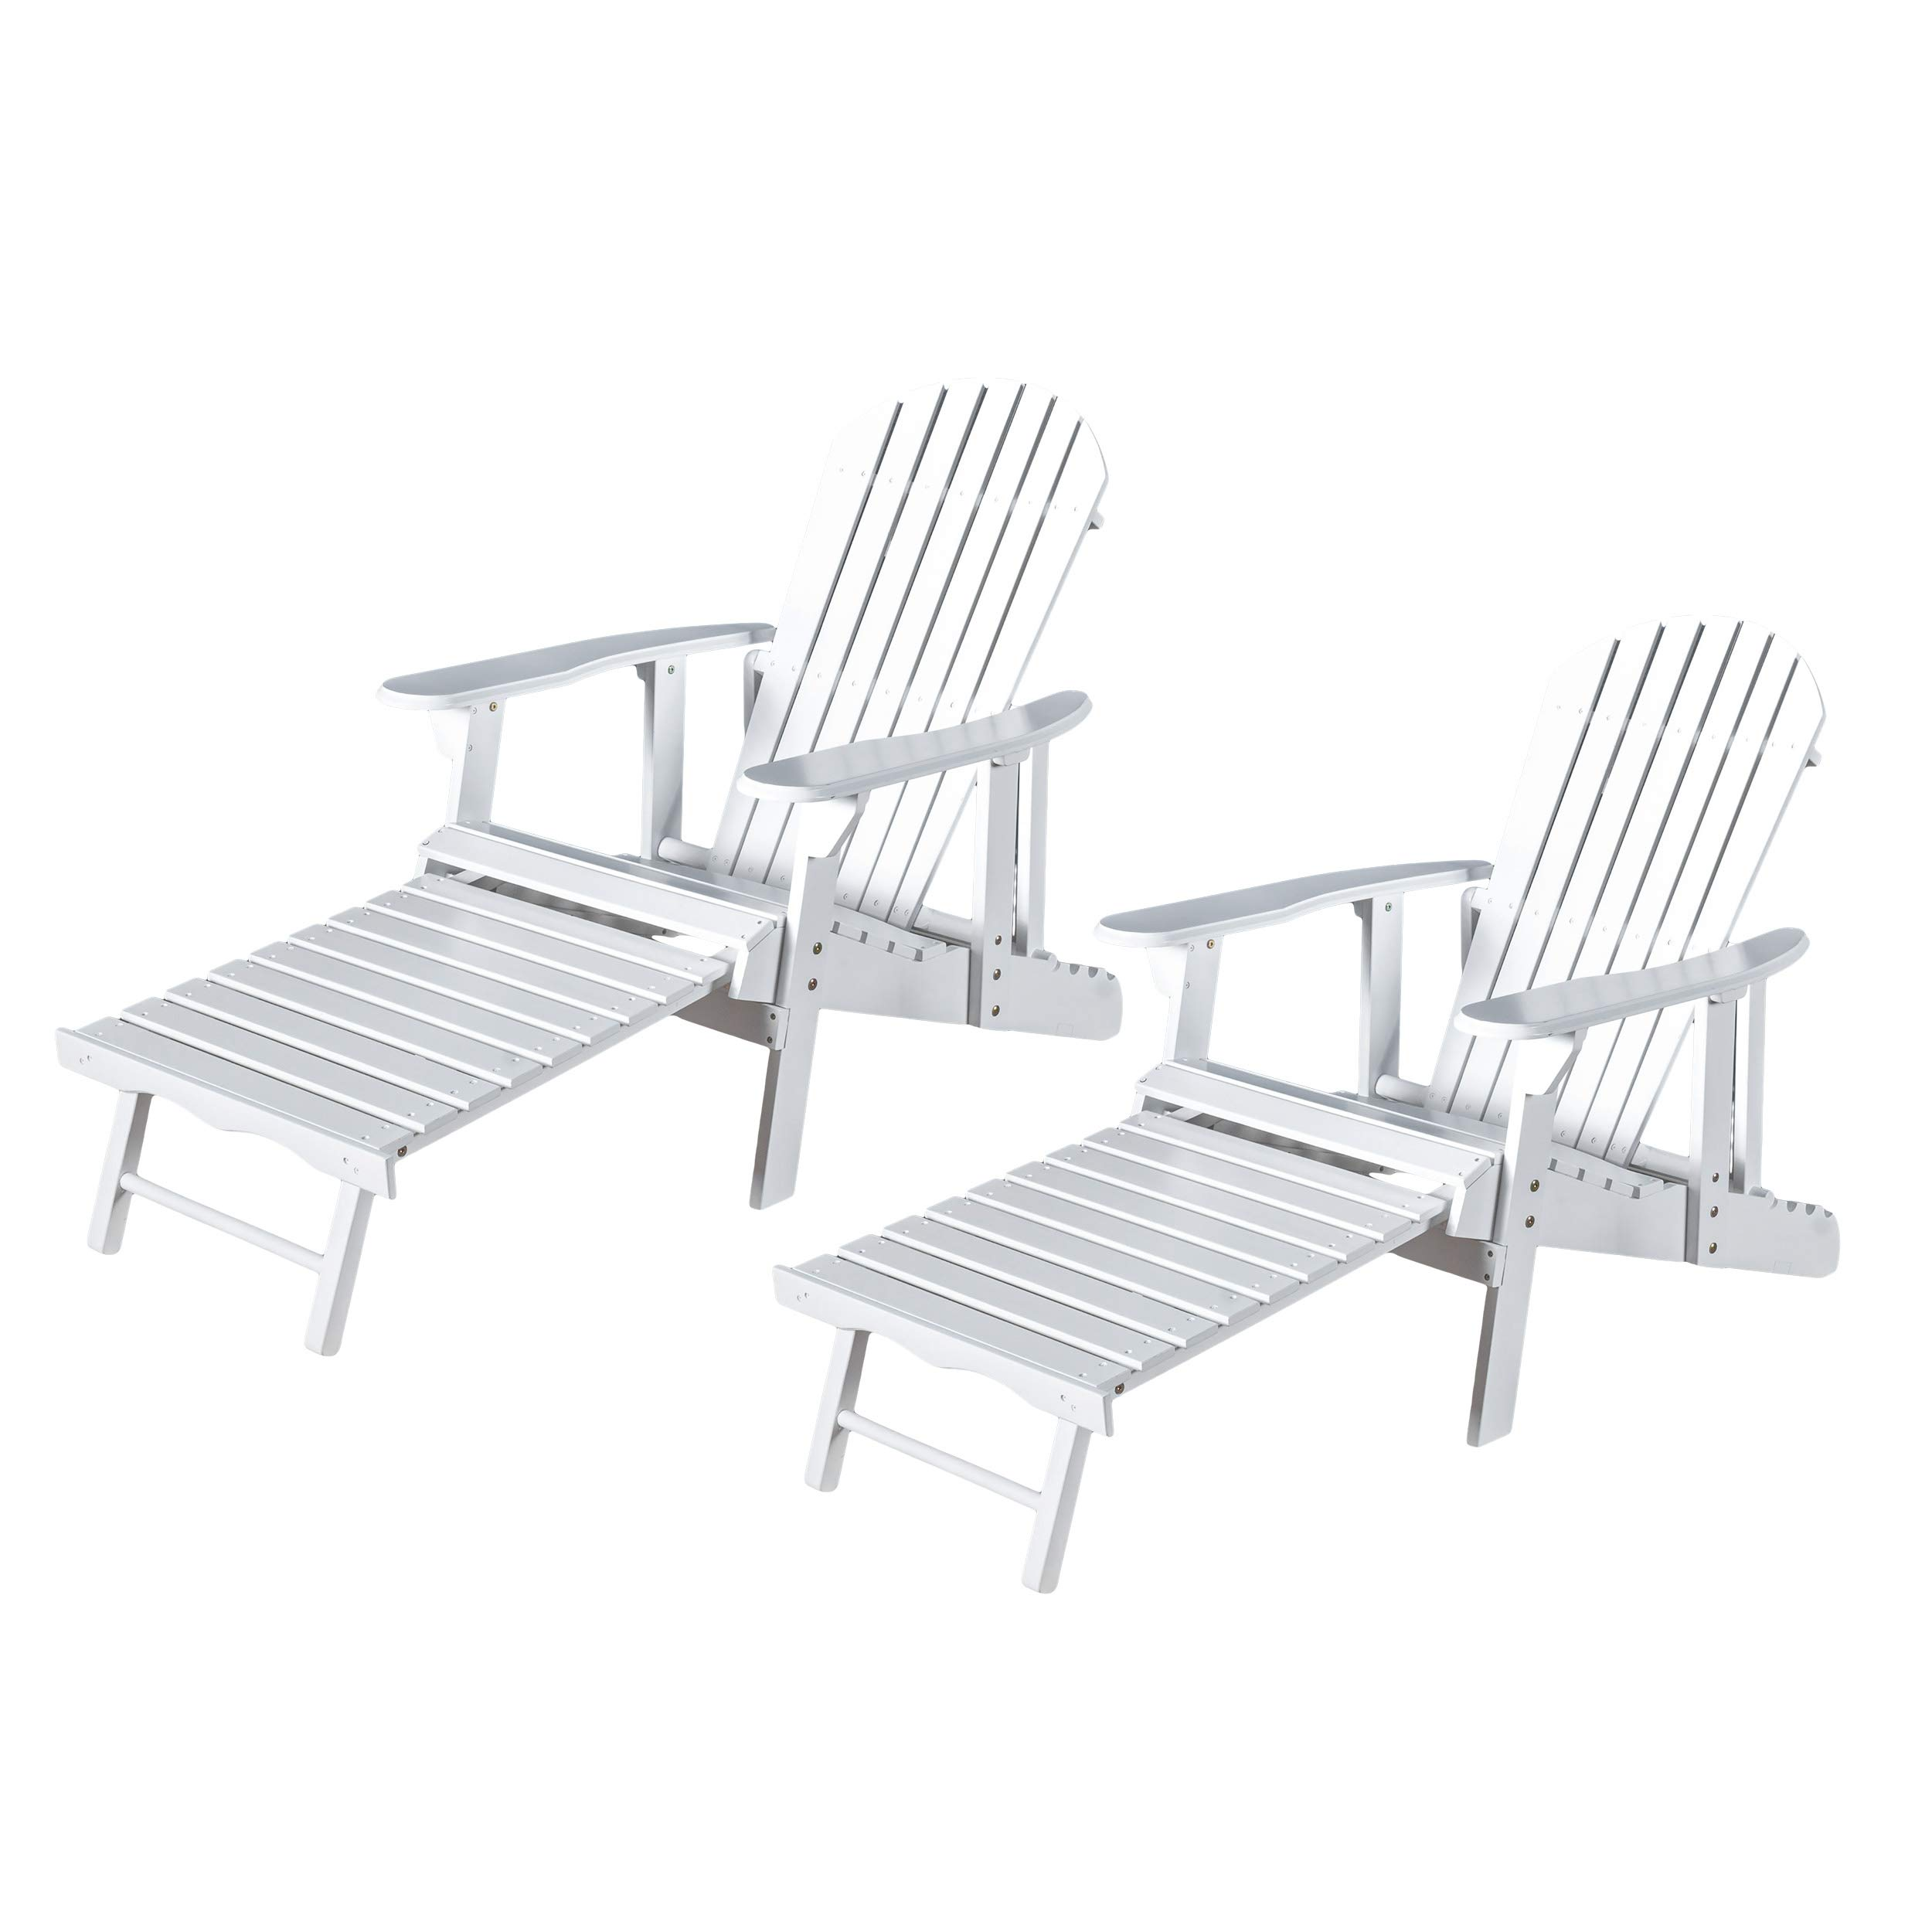 Christopher Knight Home Tampa White Reclining Wood Adirondack Chair with Footrest Set of Two (2)